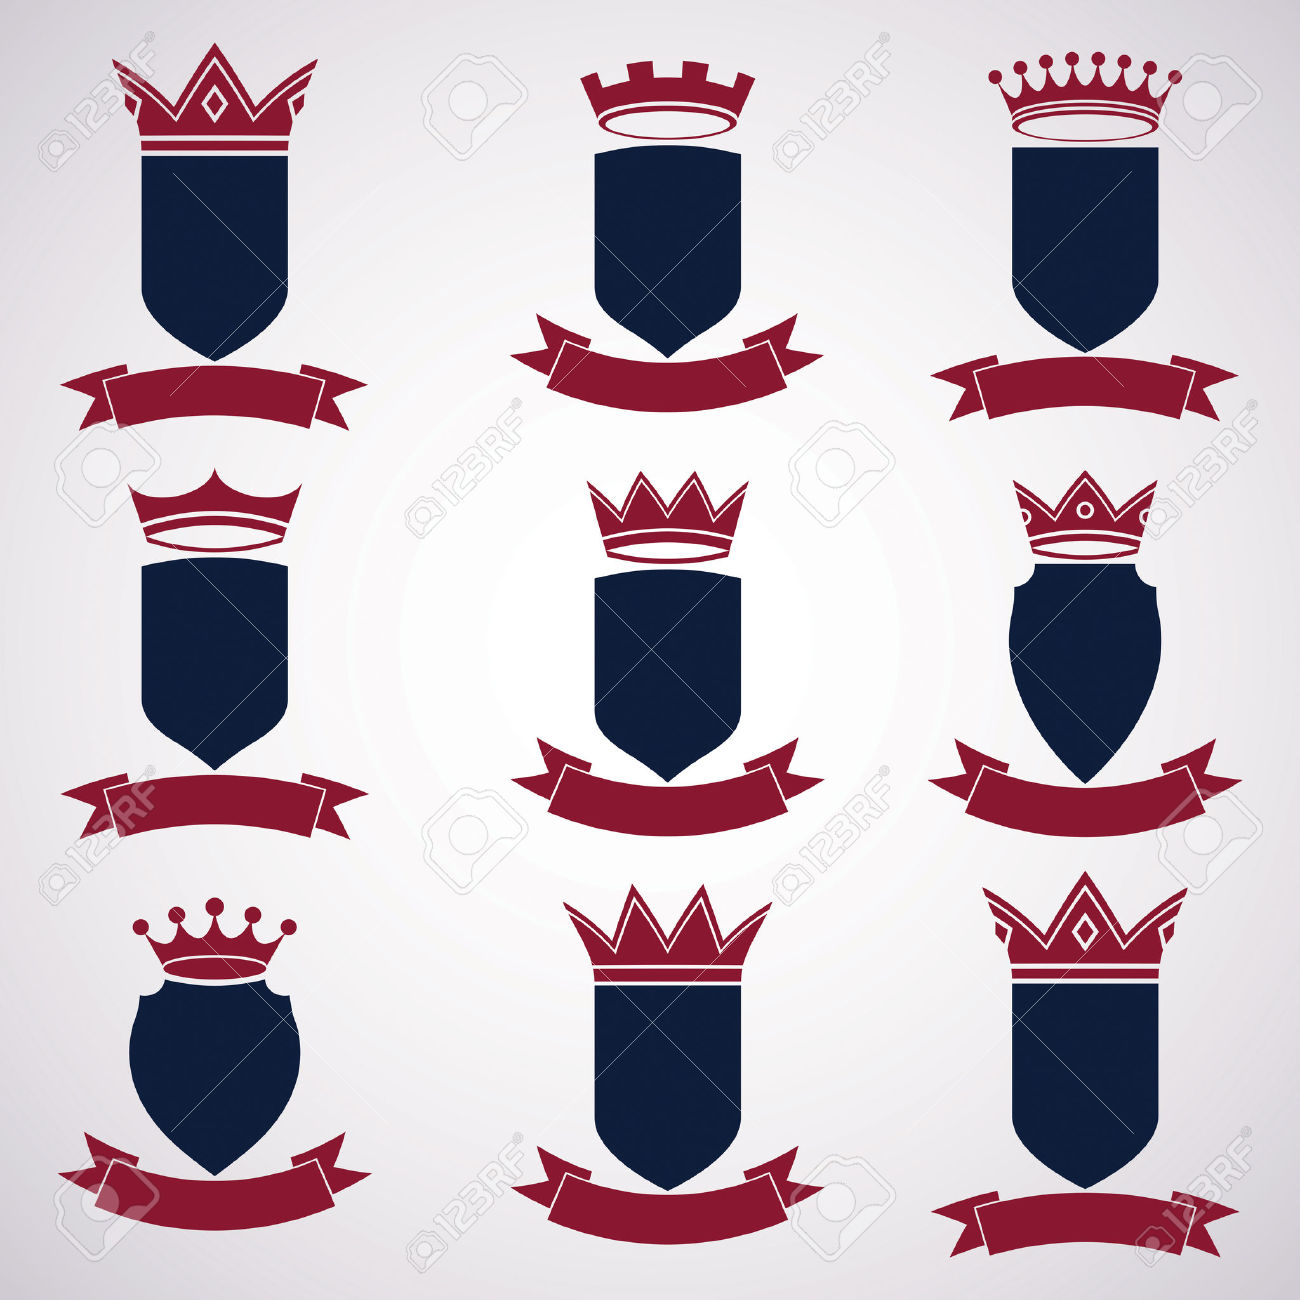 Collection Of Empire Design Elements. Royalty Free Cliparts.